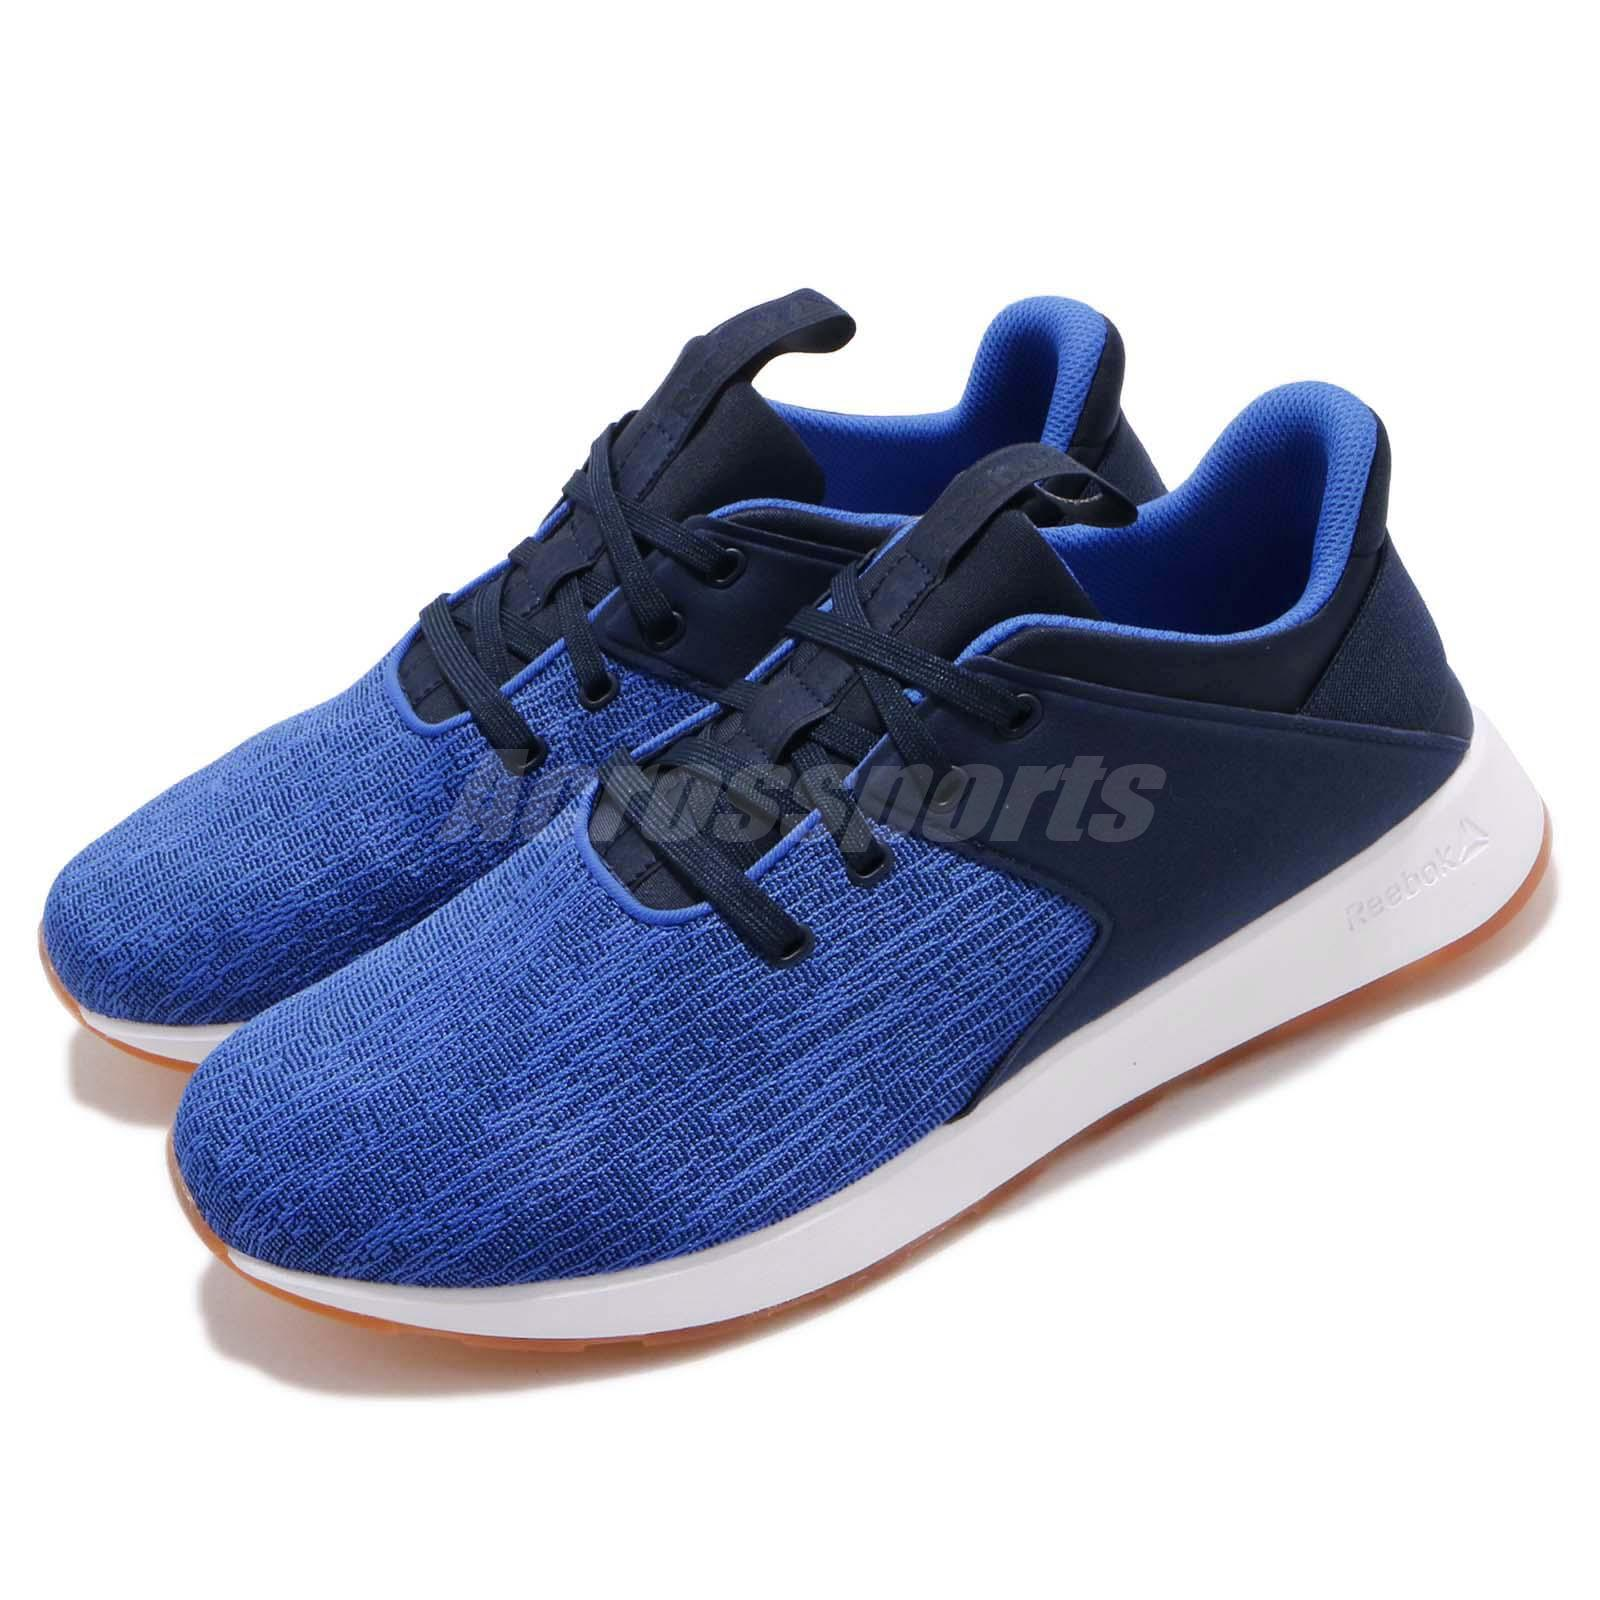 ed521133153 Details about Reebok Ever Road DMX Navy Blue White Gum Men Running Casual  Shoes Sneaker CN6402